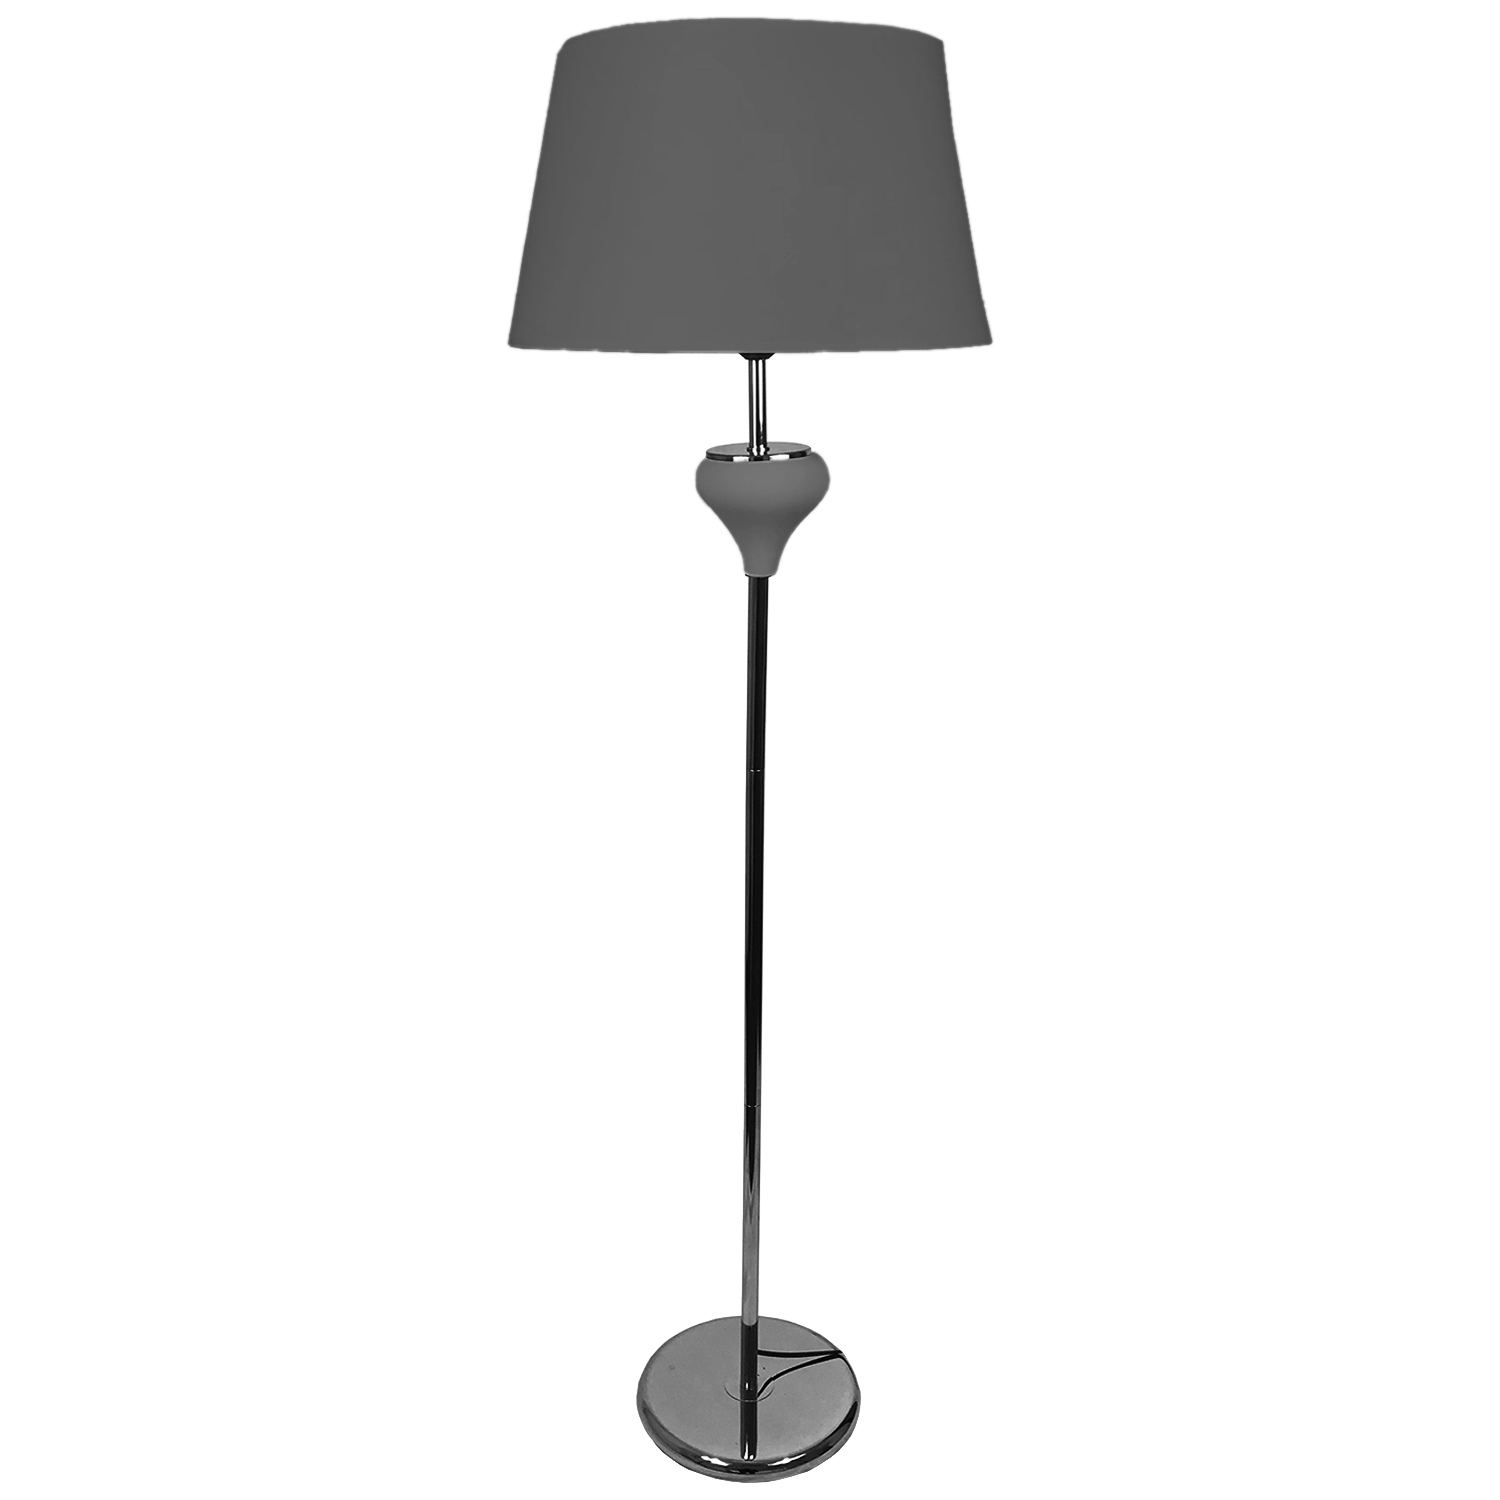 elegante stehlampe anthrazit 150 cm m bel wohnen beleuchtung. Black Bedroom Furniture Sets. Home Design Ideas